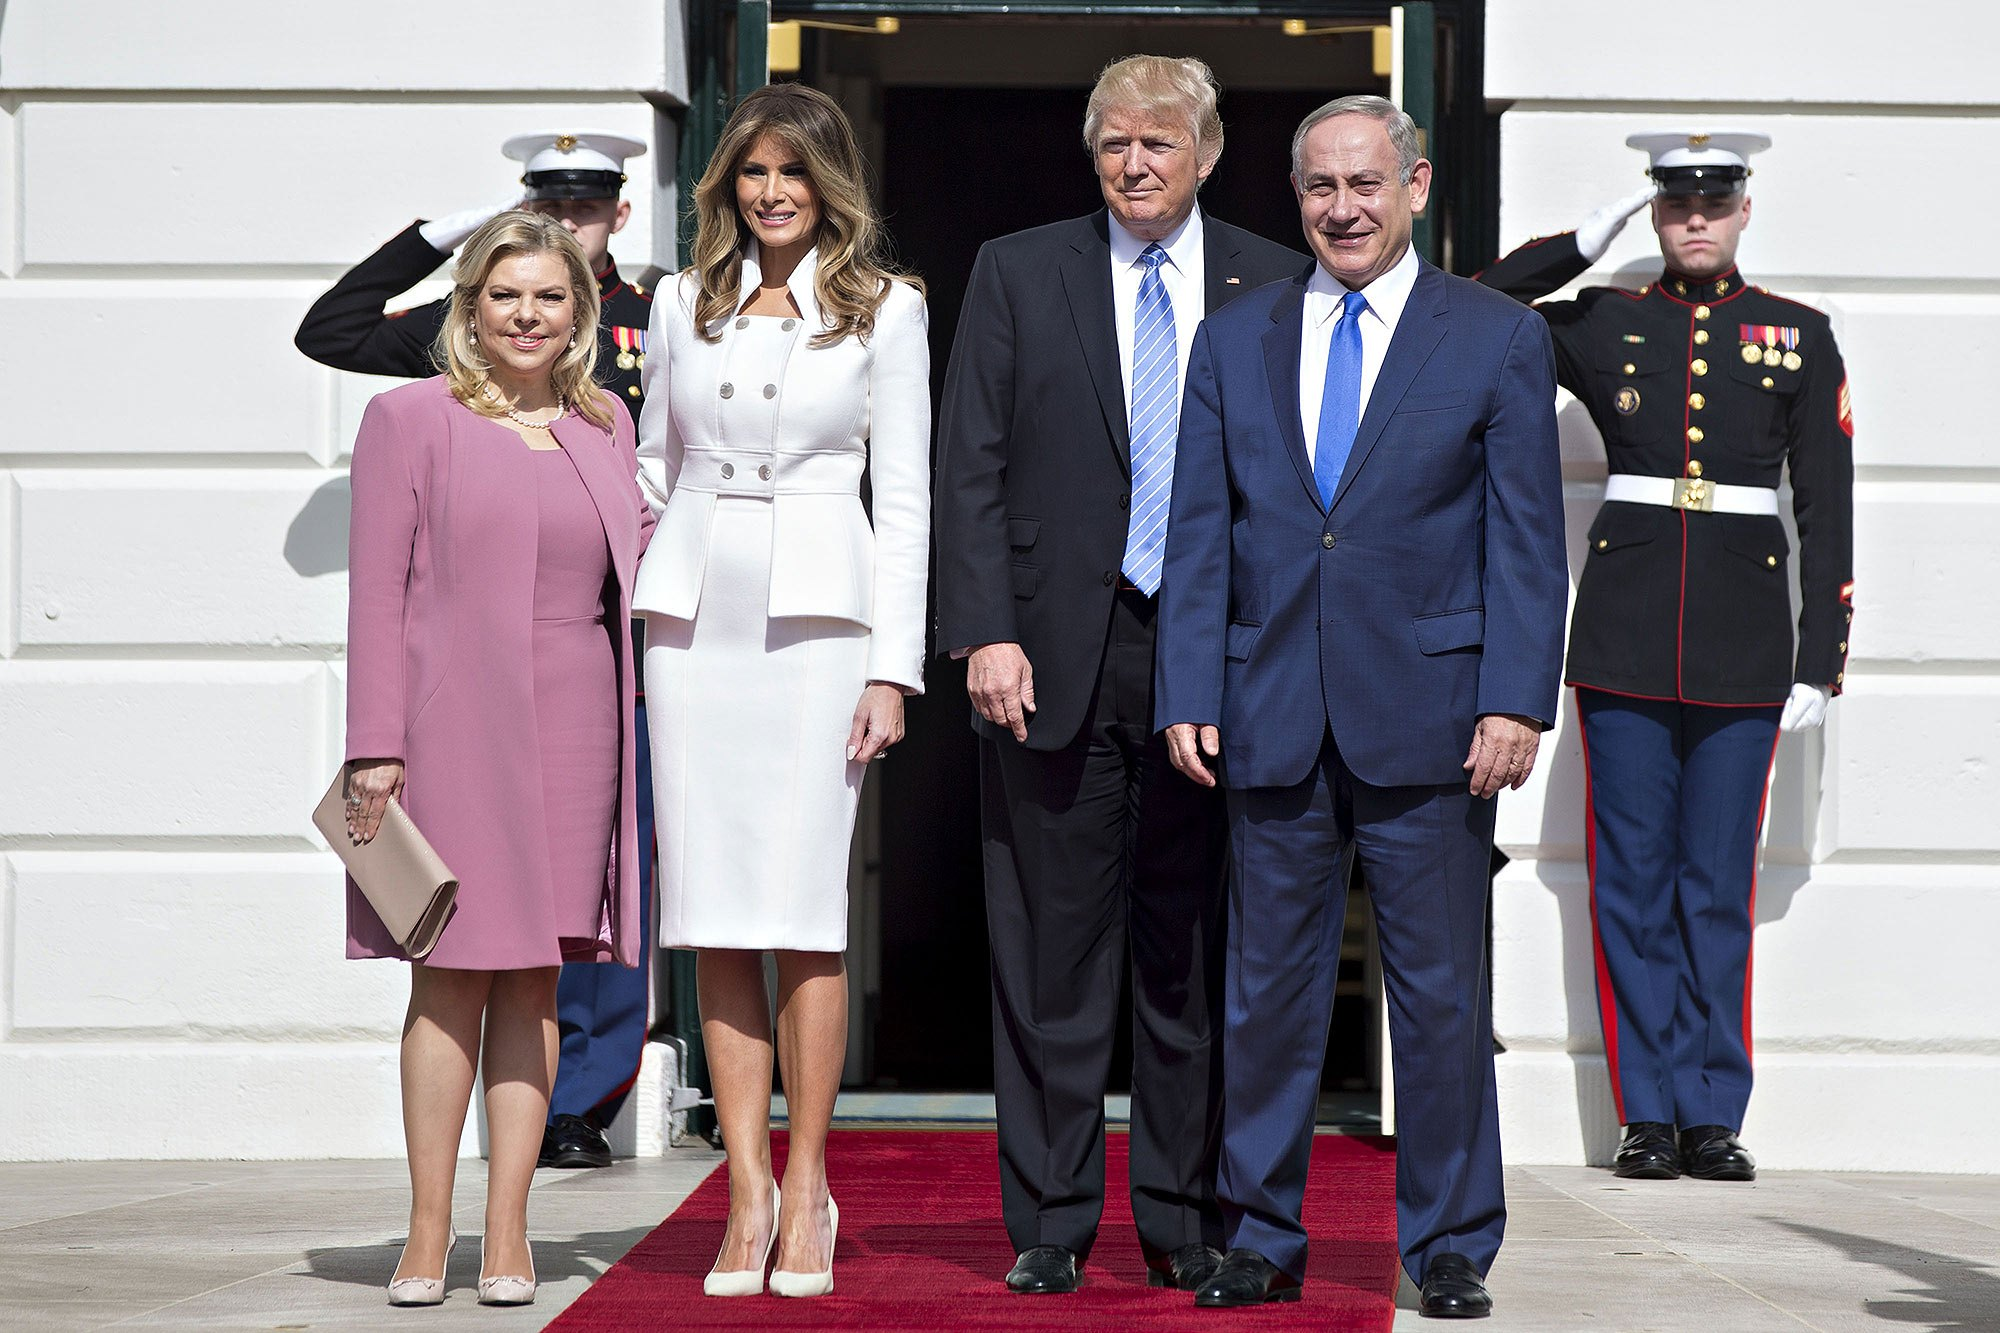 President Trump Meets With Israeli Prime Minister Benjamin Netanyahu At The White House